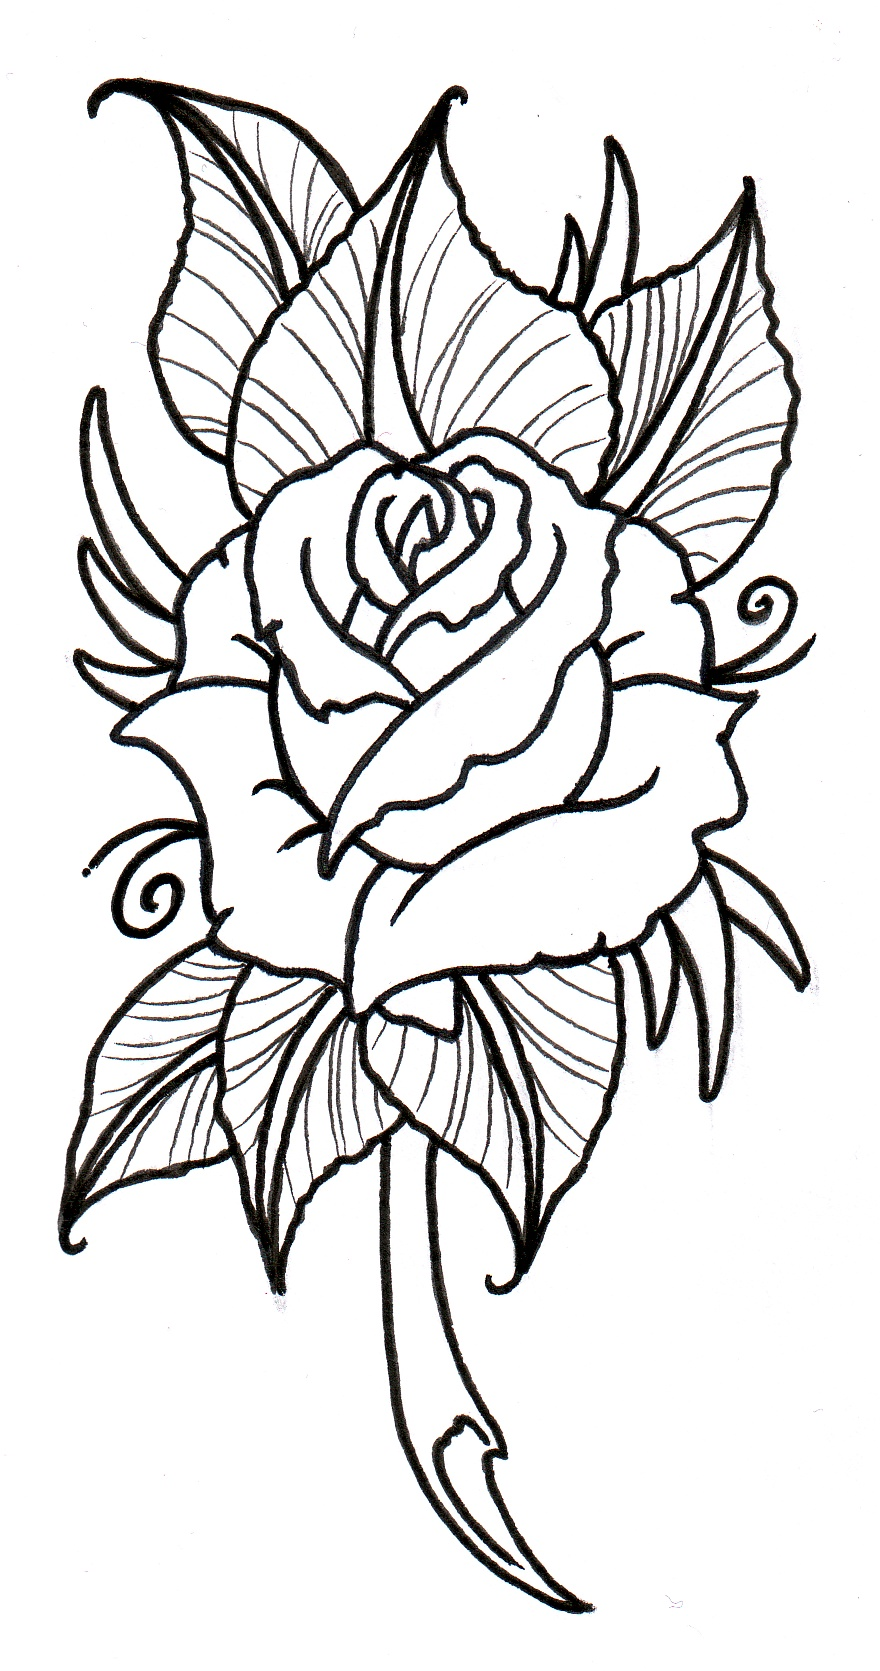 Rose Outline Drawing - ClipArt Best